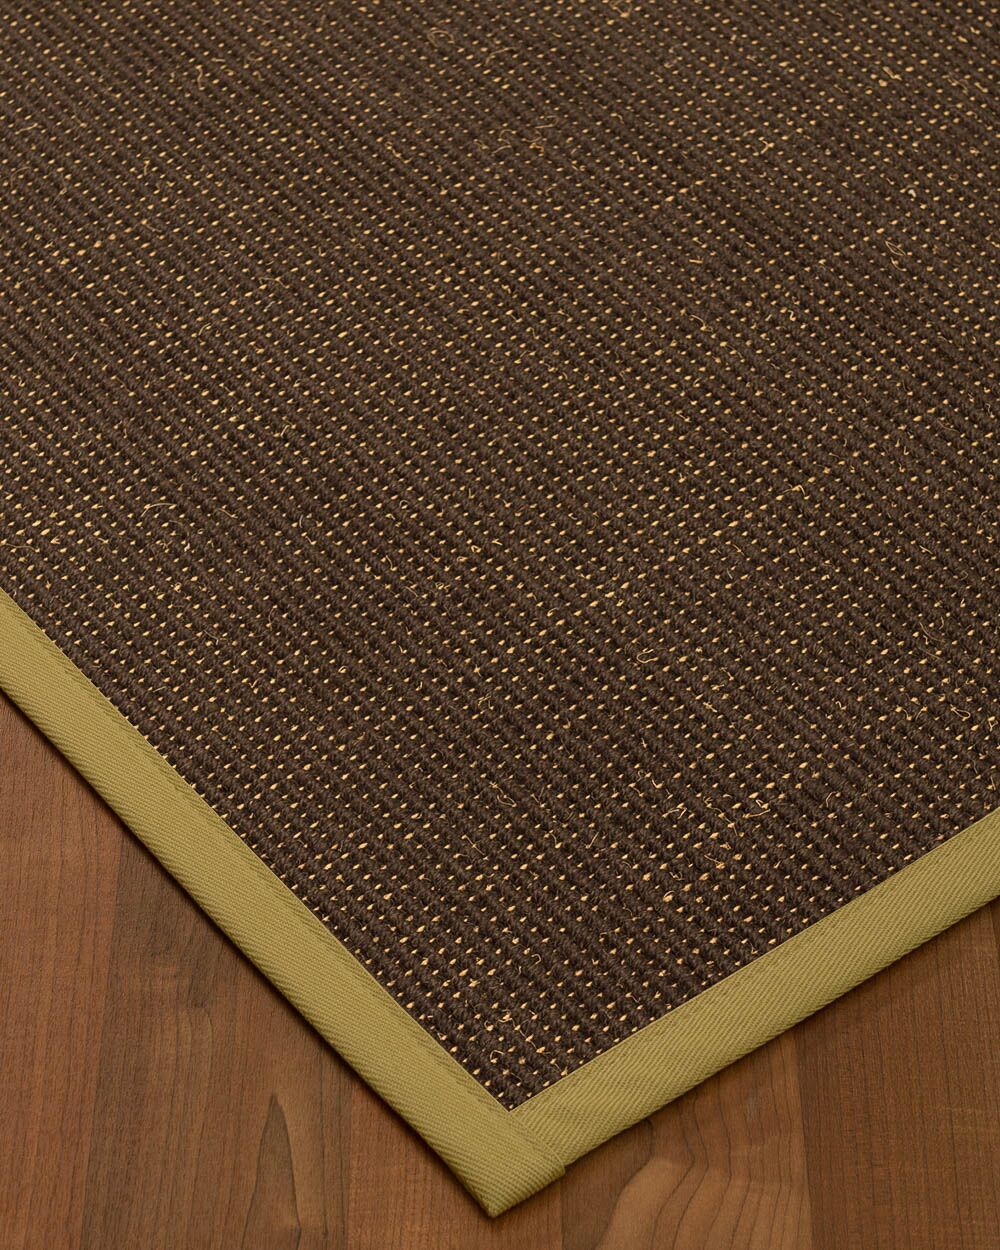 Kersh Border Hand-Woven Brown/Khaki Area Rug Rug Size: Rectangle 6' x 9', Rug Pad Included: Yes